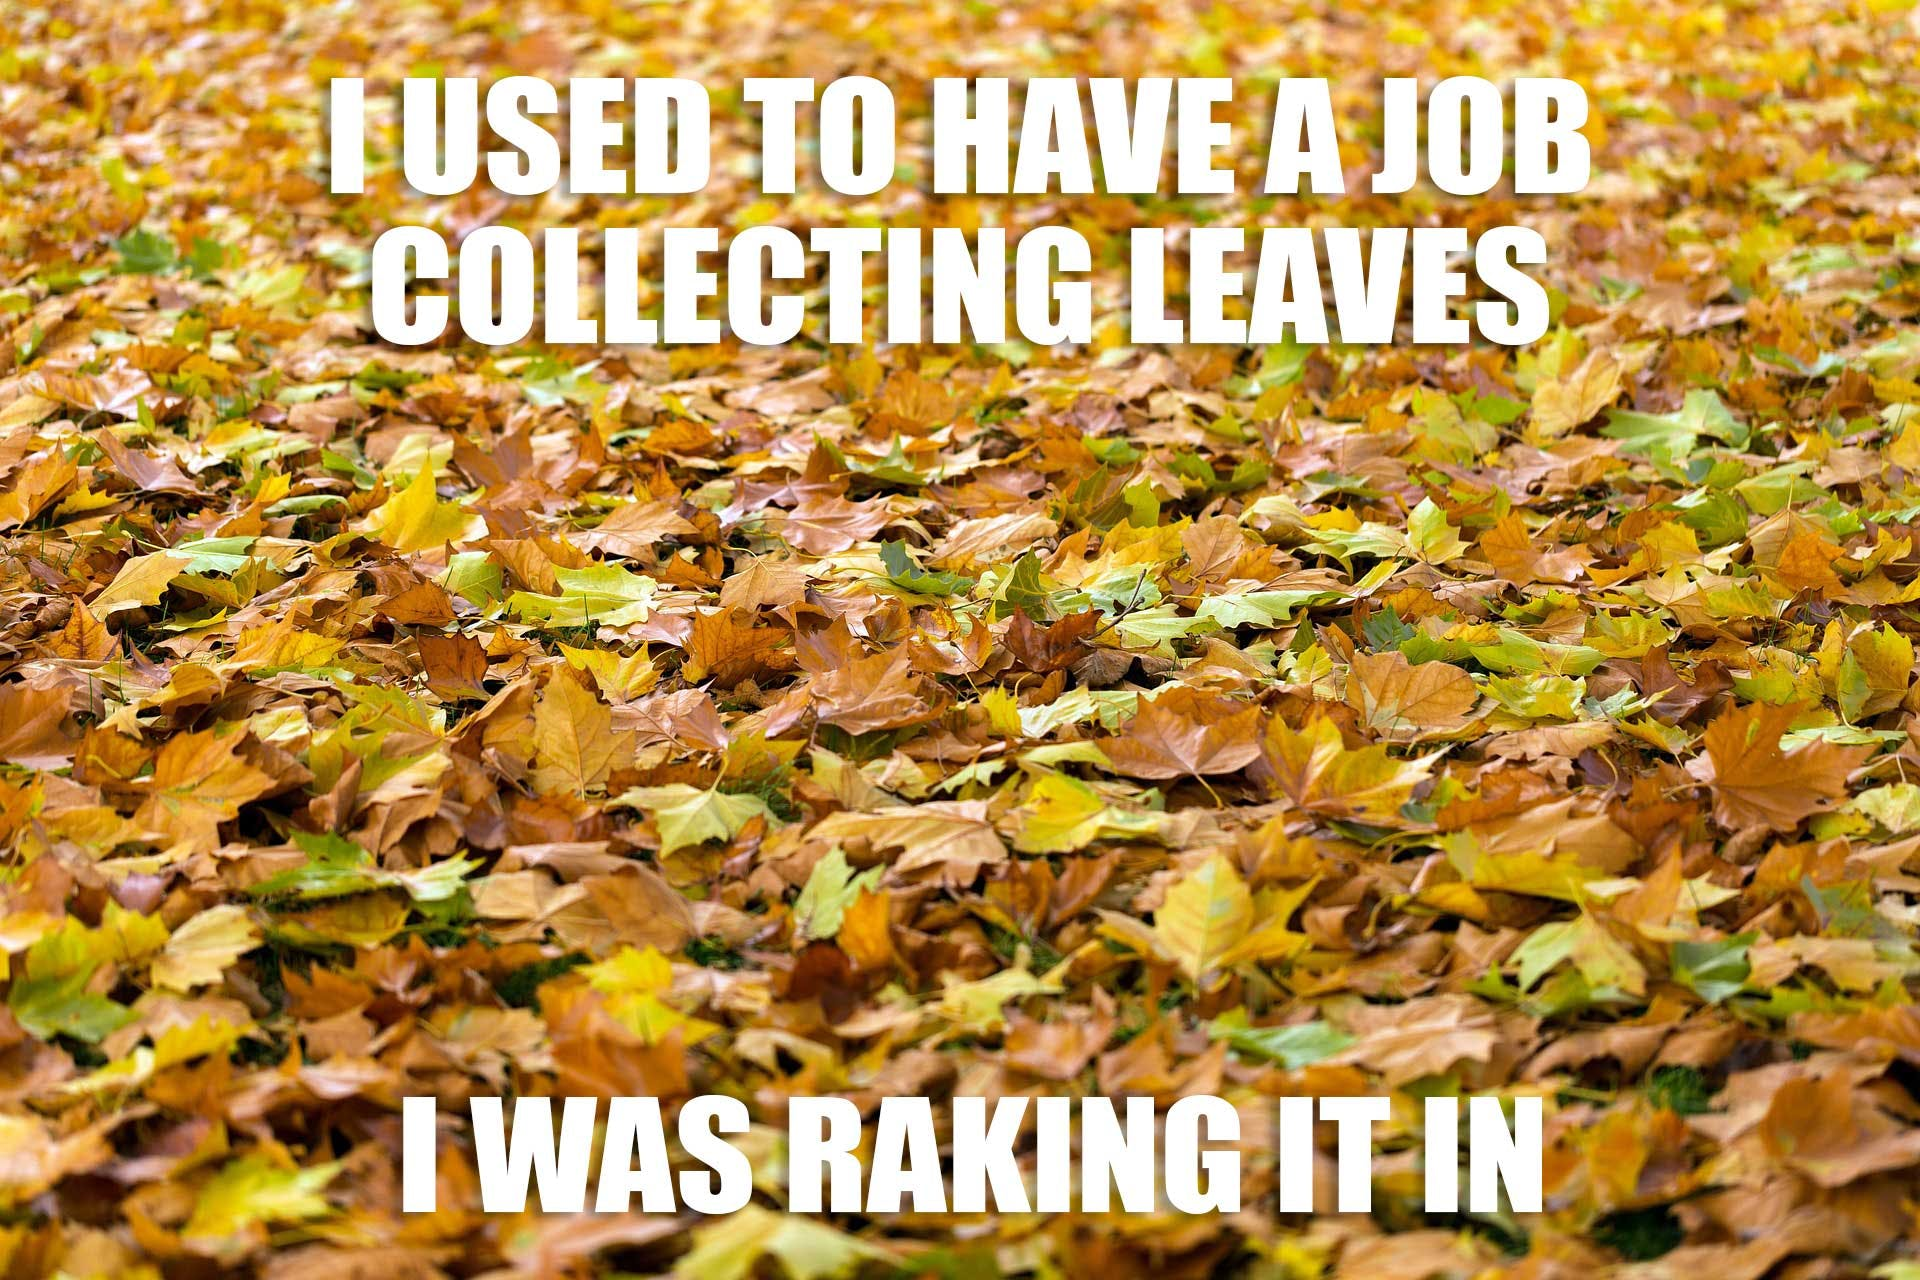 I used to have a job collecting leaves...